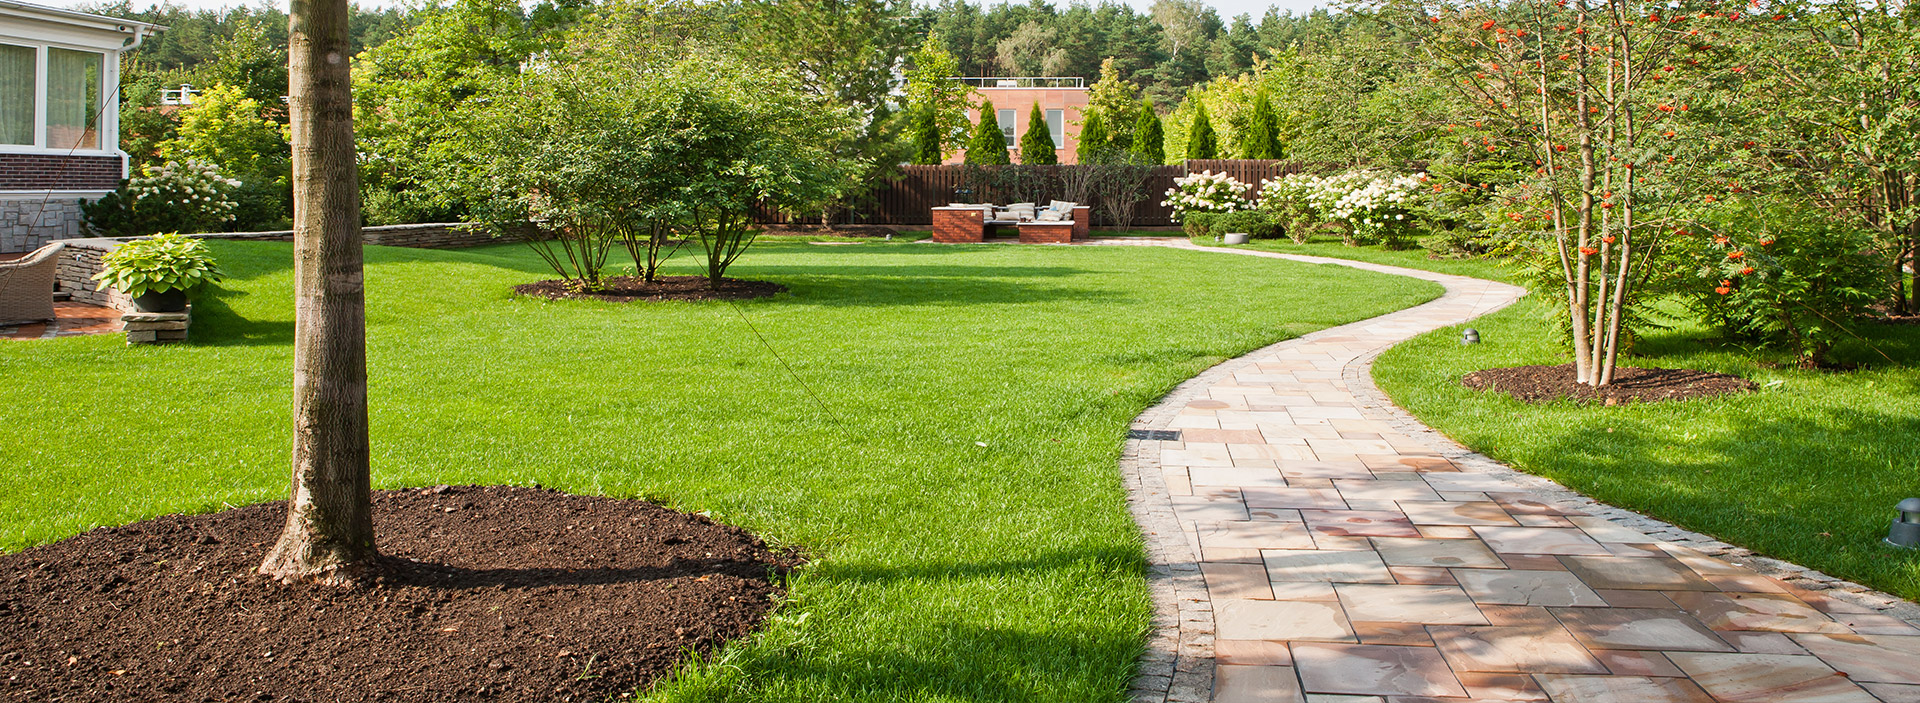 Does Landscaping Increase Your Property Value Home | 2017 - 2018 Cars Reviews